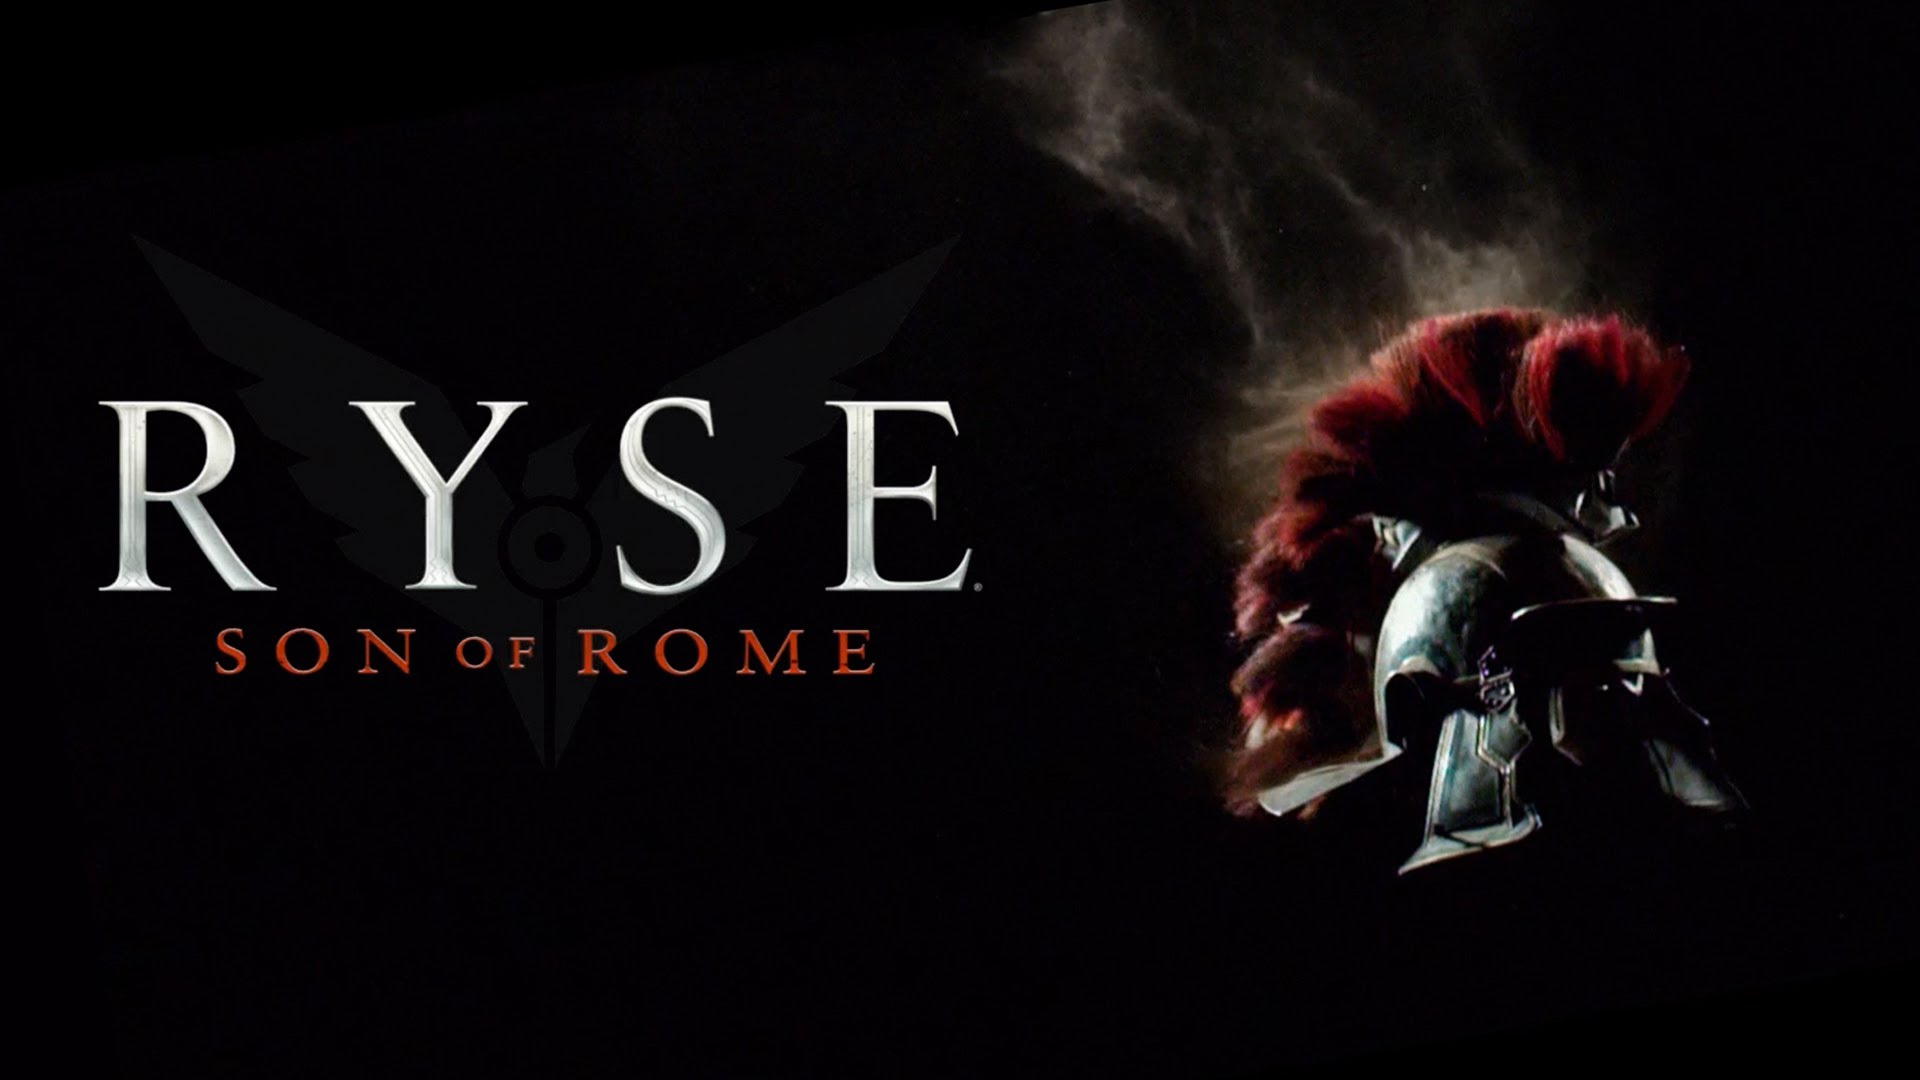 Video For Ryse: Son of Rome – The Fall, Final Episode Now Available